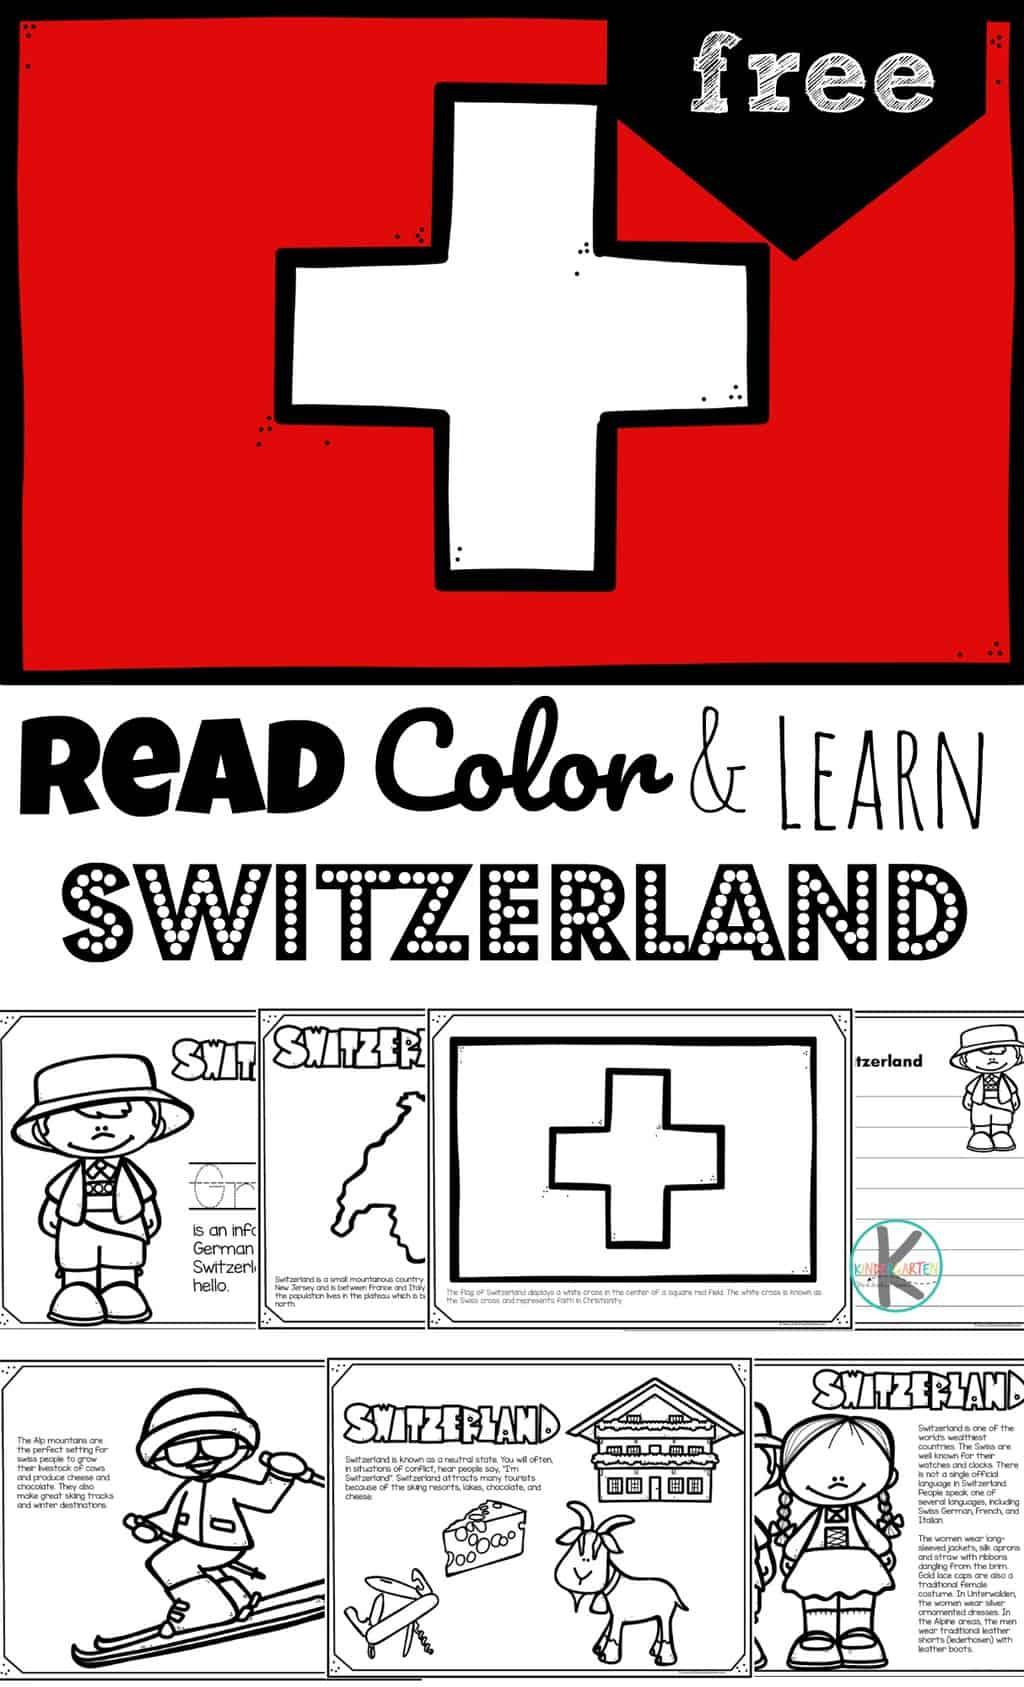 hight resolution of FREE Read Color and Learn about SWITZERLAND